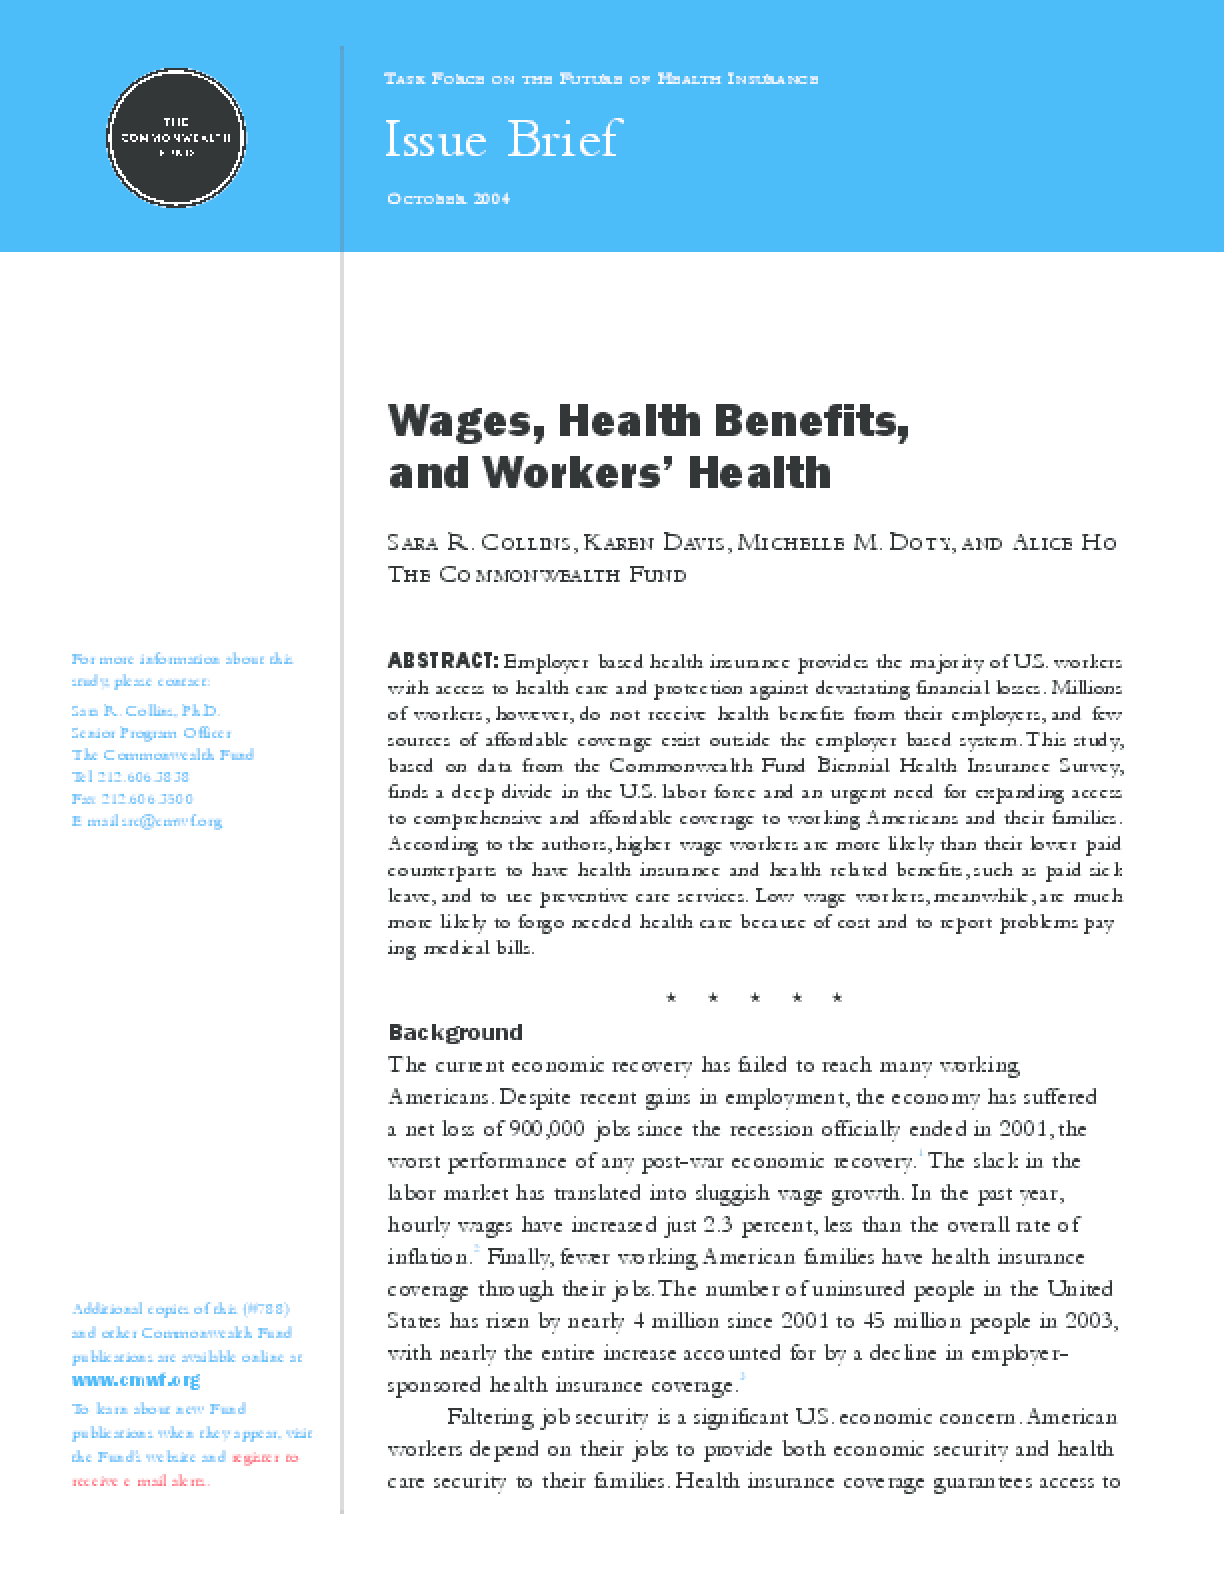 Wages, Health Benefits, and Workers' Health